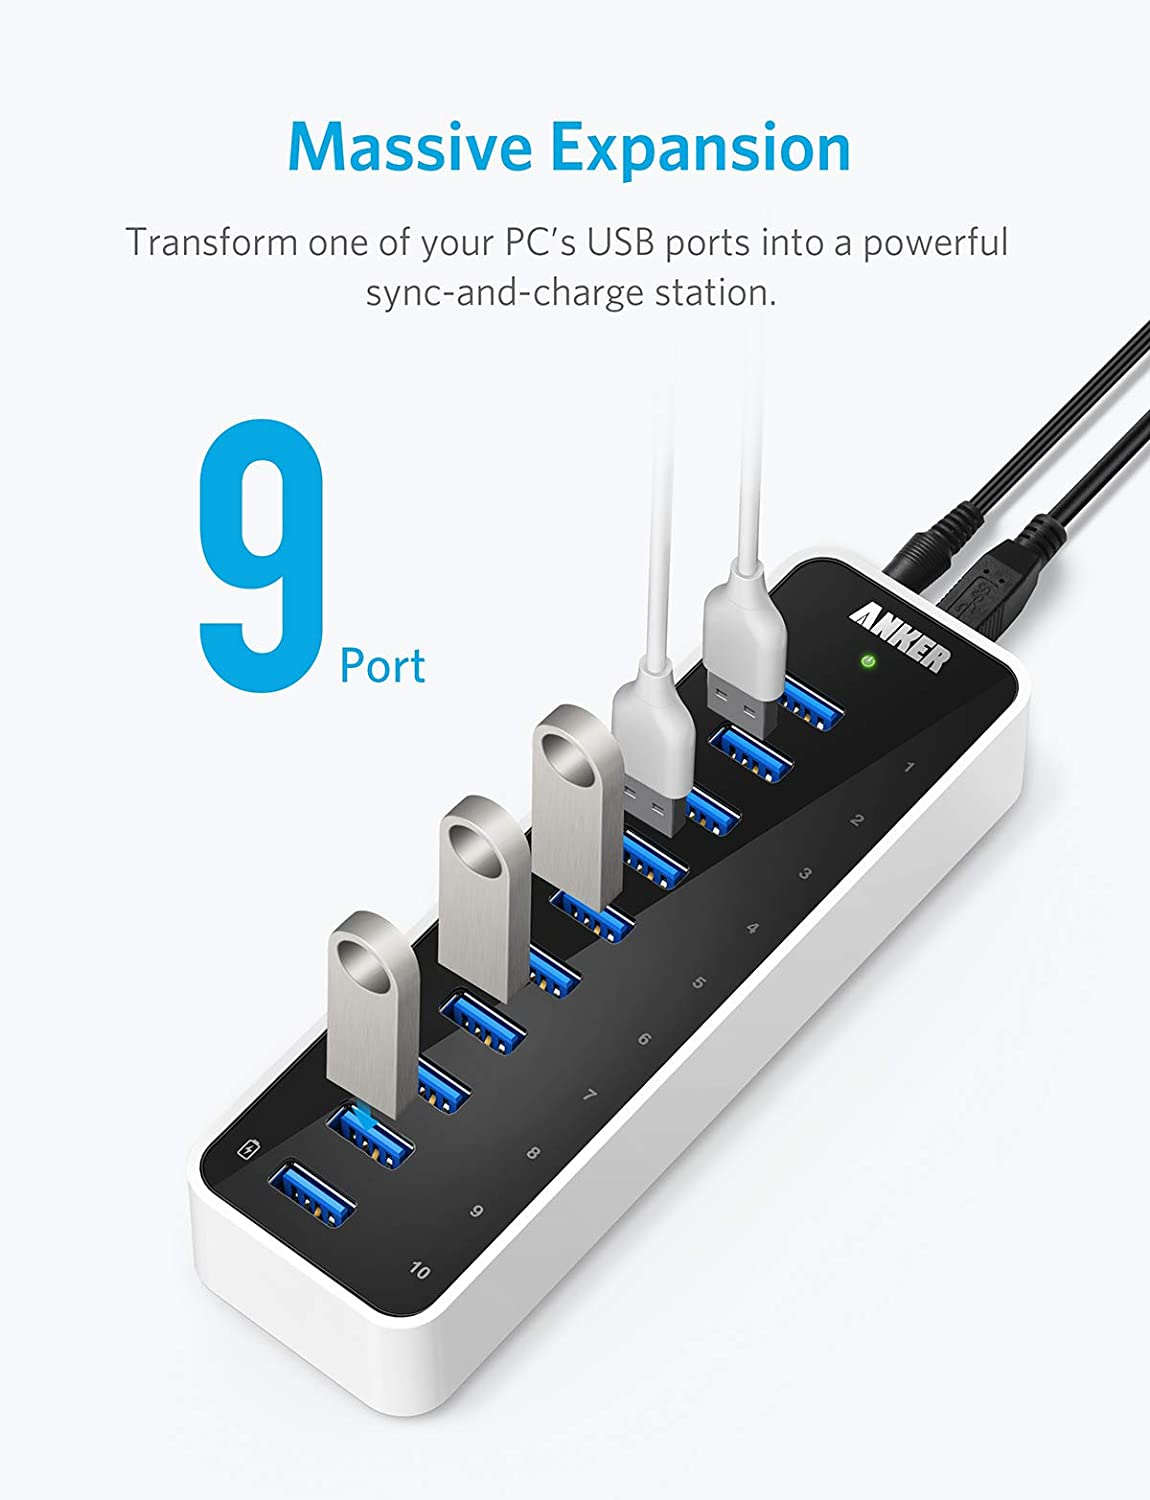 [Upgraded Version] Anker USB 3.0 SuperSpeed 10-Port Hub Including a BC 1.2 Charging Port with 60W (12V / 5A) Power Adapter [VIA VL812-B2 Chipset and Updated Firmware 9081] AH231